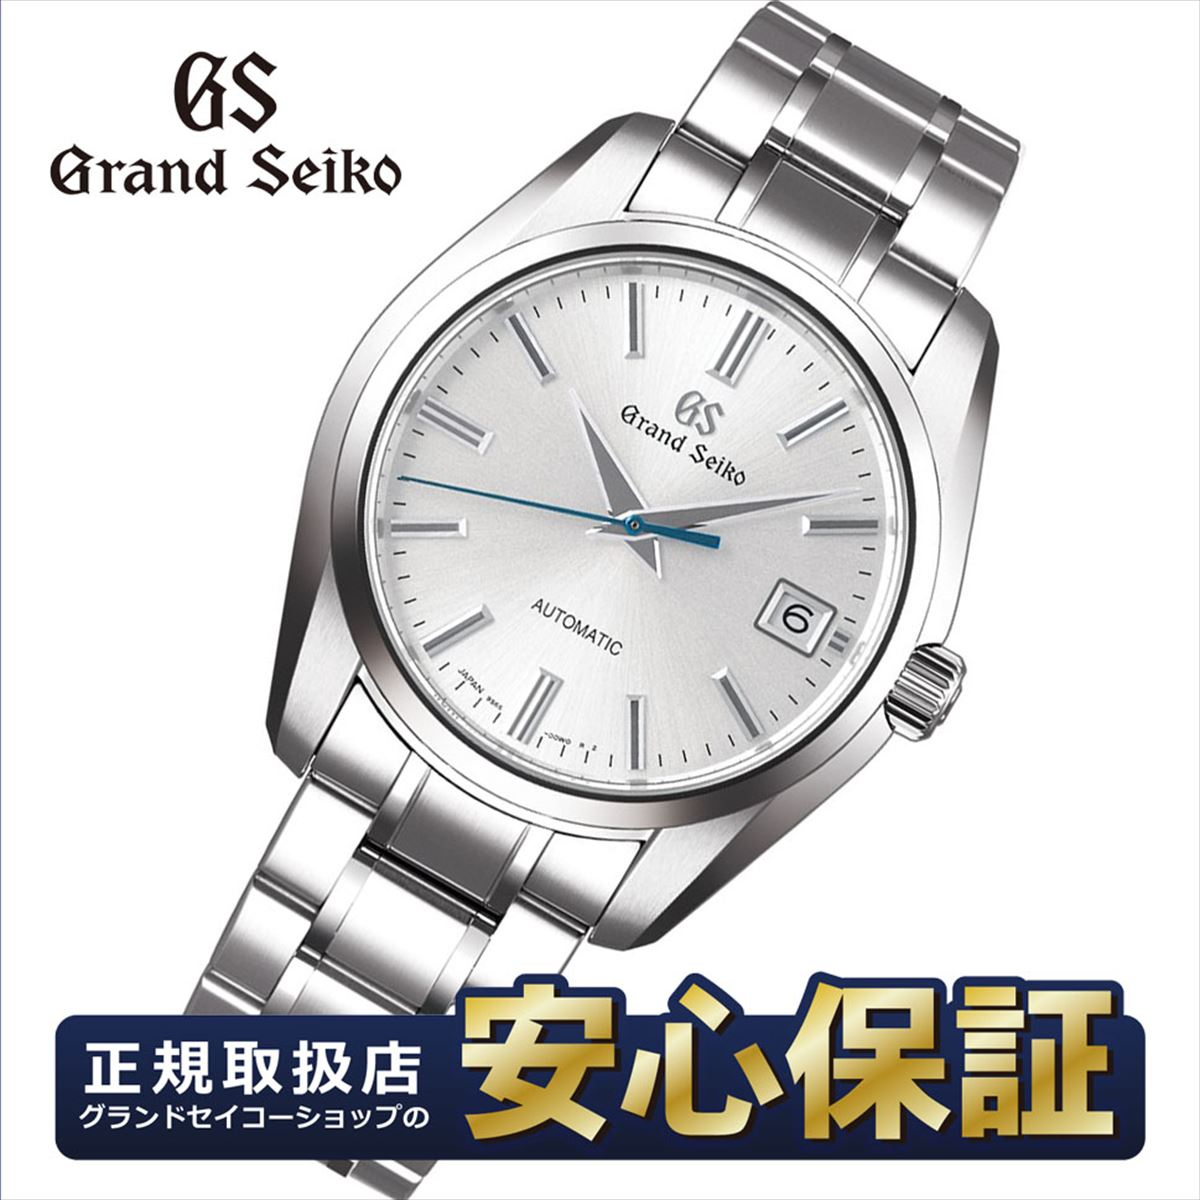 腕時計, メンズ腕時計 523:59602,00030SEIKO SBGR315 40mm 3days GRAND SEIKO 0219NLGS10spl